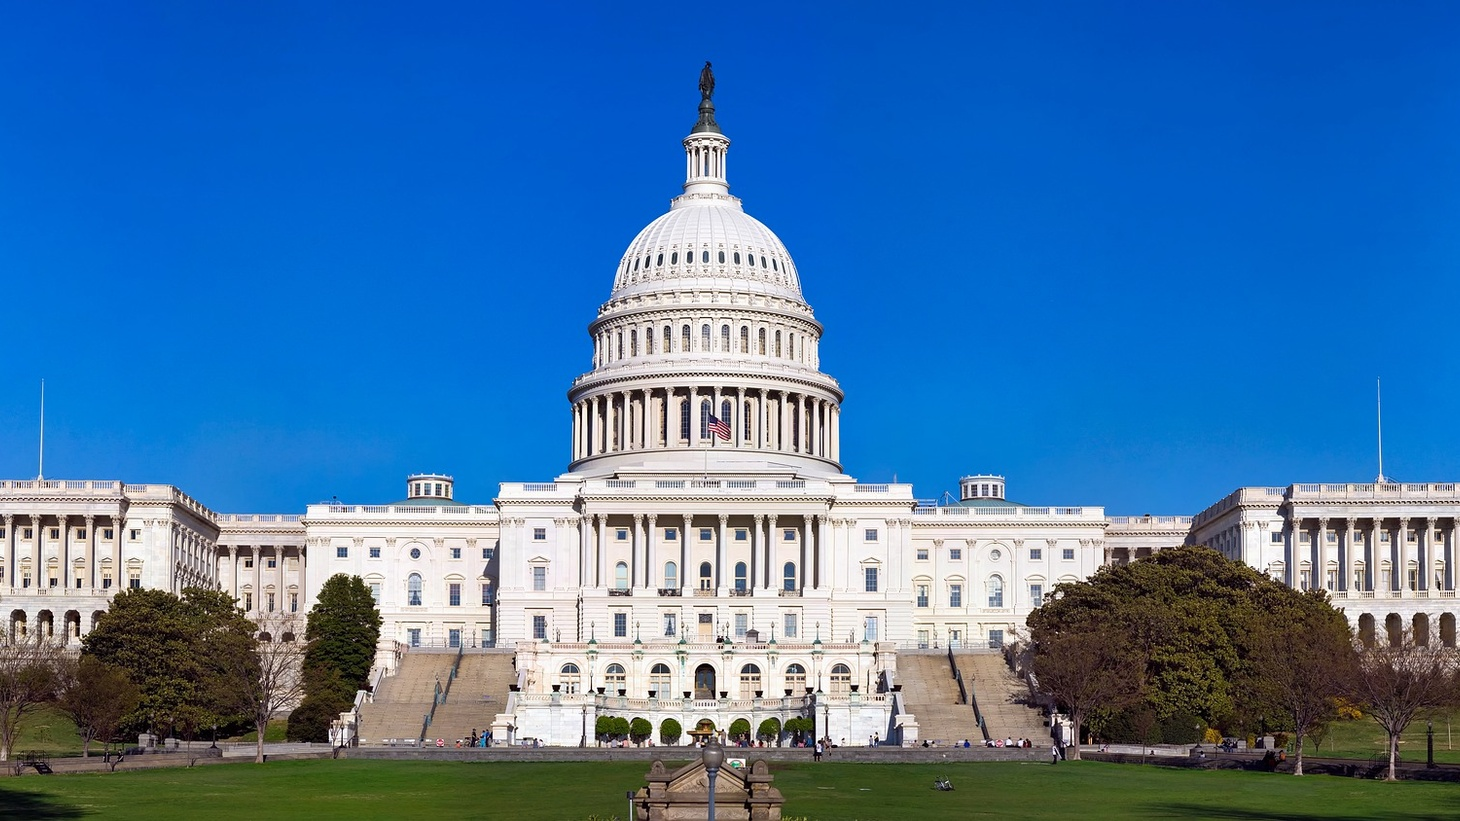 Congress doesn't pass many bills largely because of the Senate filibuster, the rule requiring 60 votes to end debate on a bill before it can come to a vote.